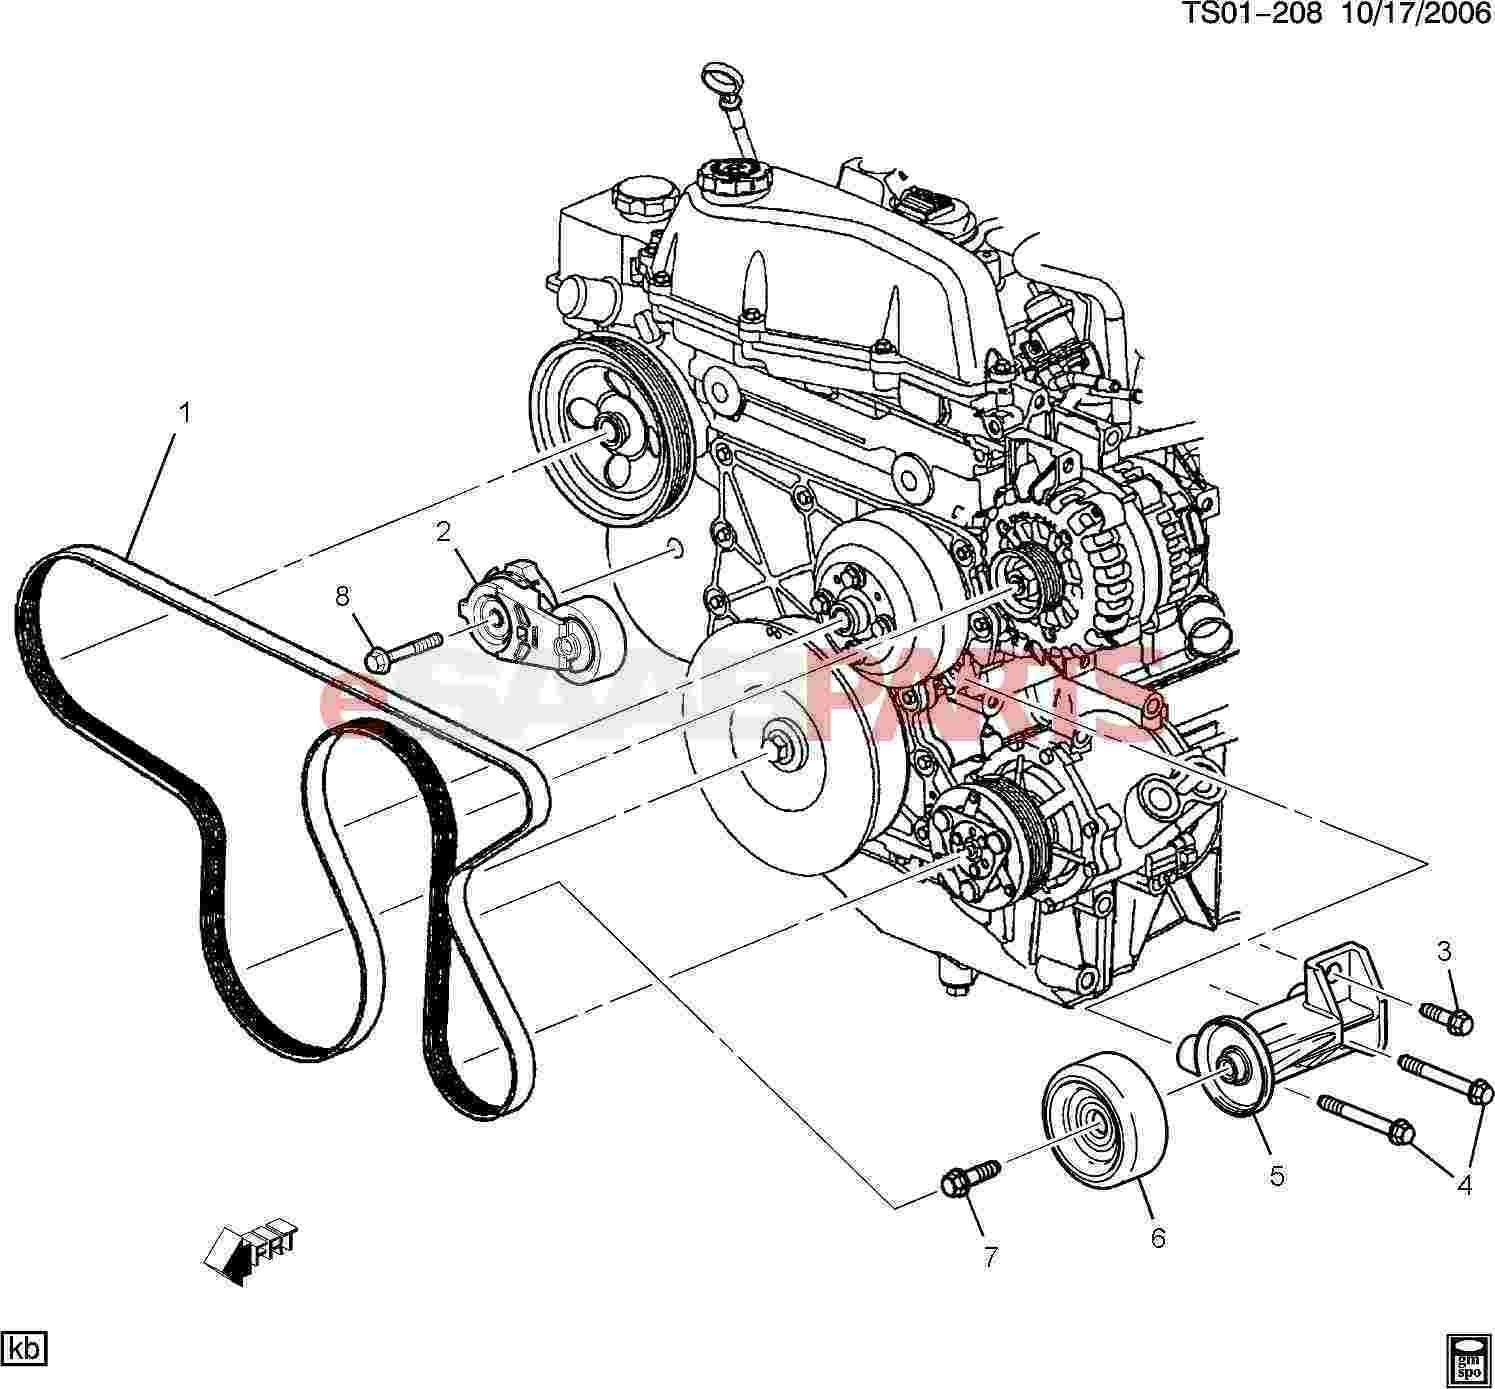 2002 chevy trailblazer 4 2 engine diagram wiring circuit u2022 rh wiringonline today 2002 chevy trailblazer engine diagram 2004 chevy trailblazer engine diagram